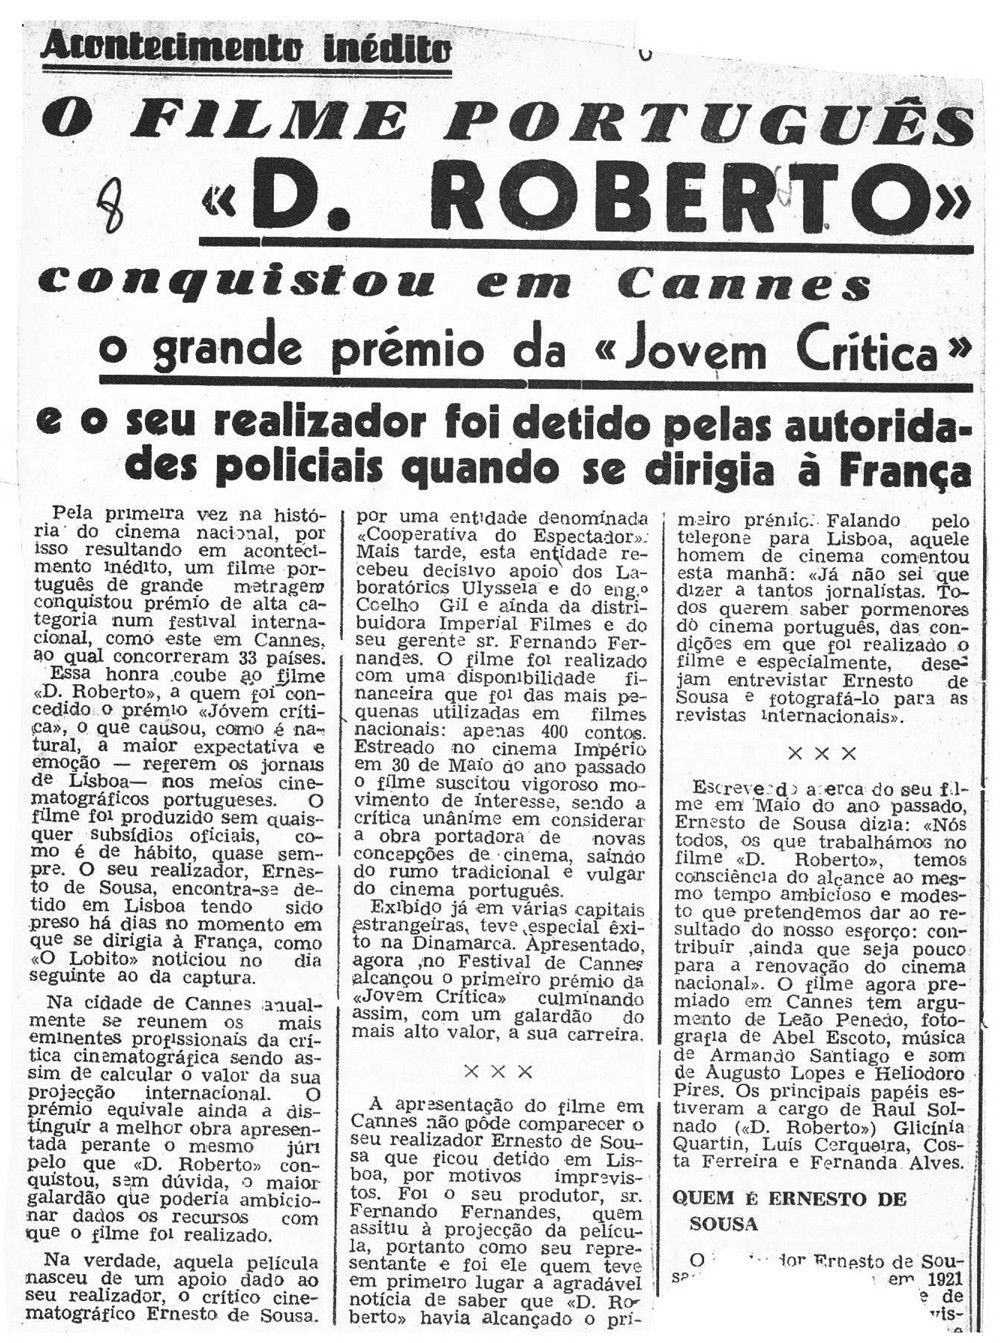 News clip about Dom Roberto's prize in Cannes and Ernesto de Sousa's imprisonment, 1963.